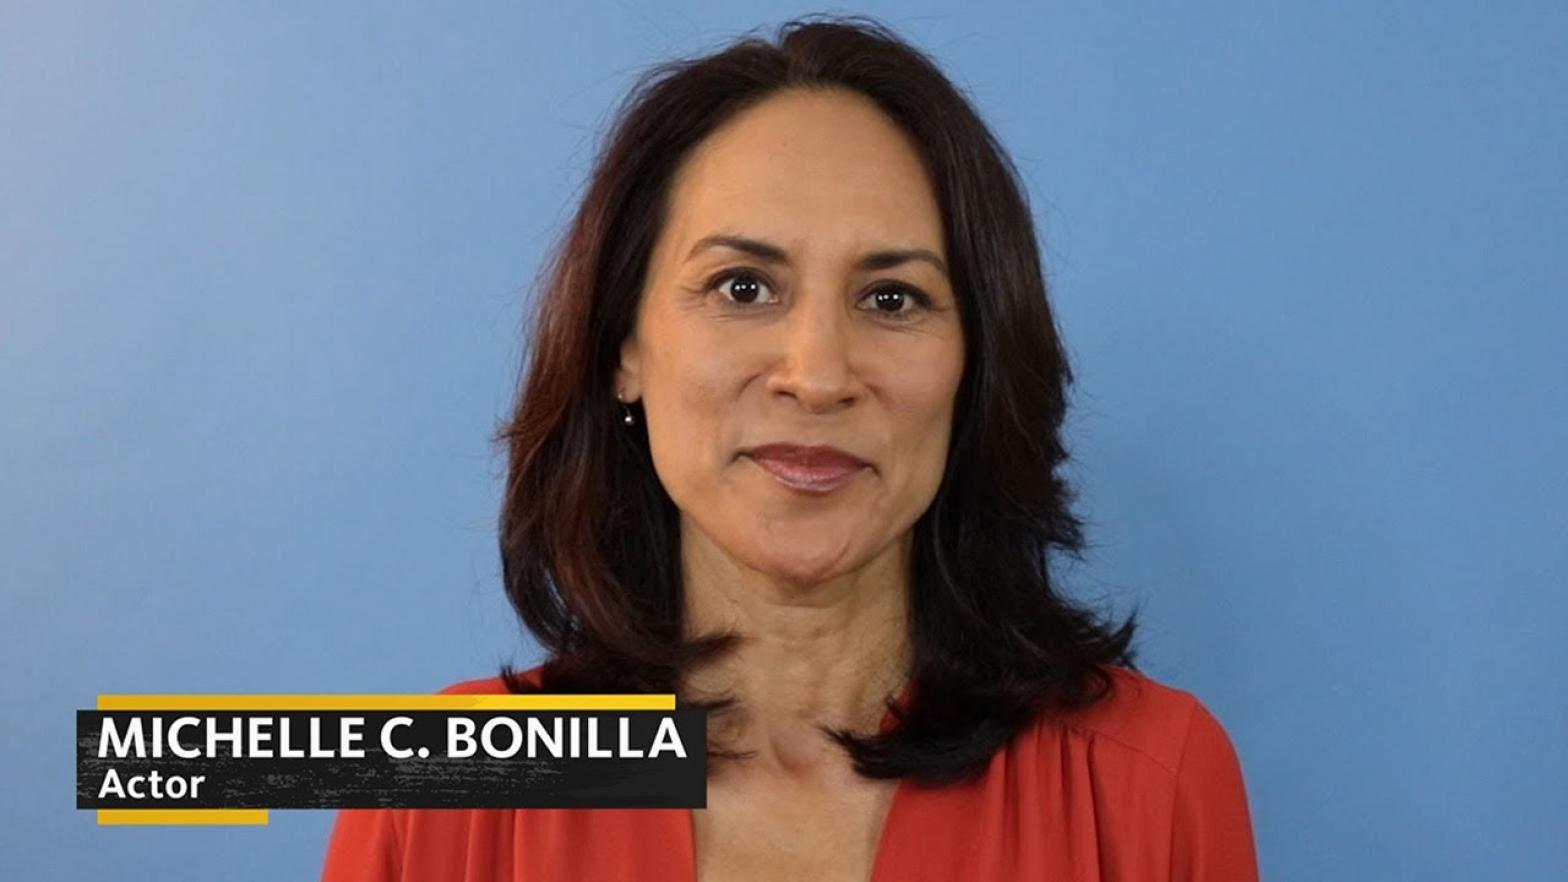 Bonilla in pink top on a blue background